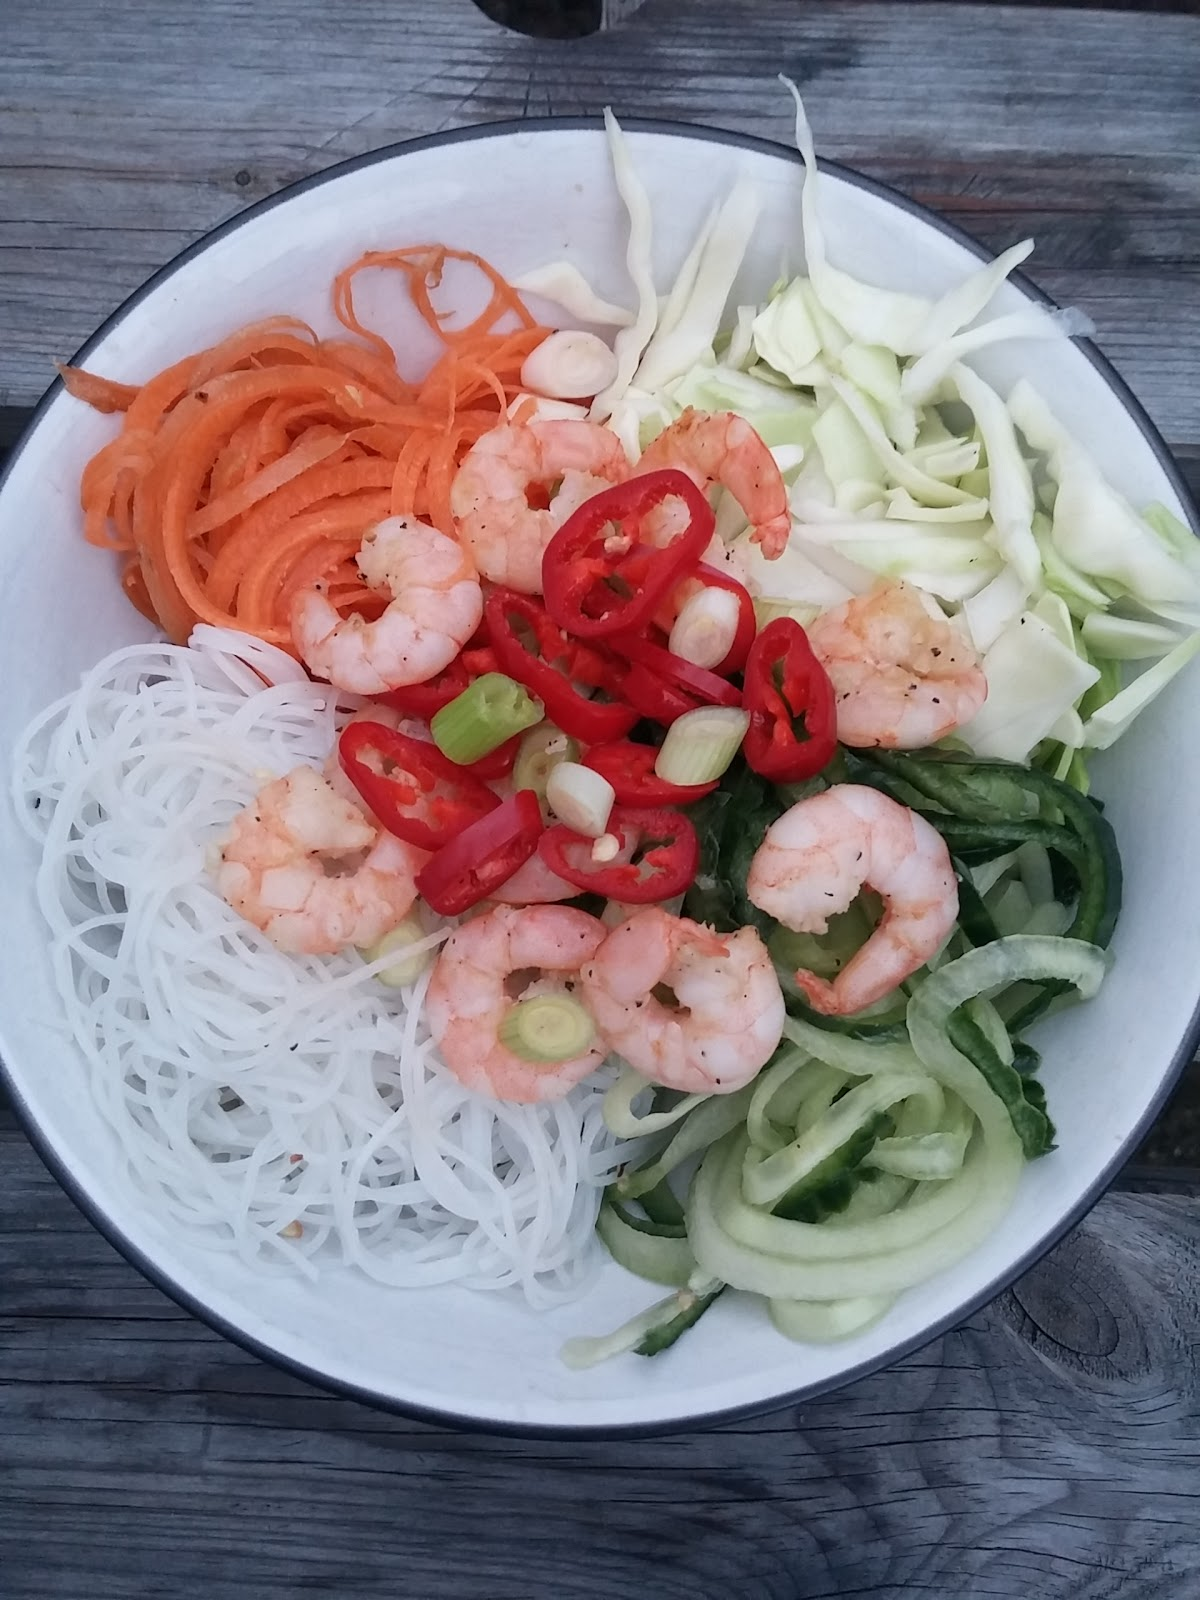 Colourful vietnamese salad of carrots, raw white cabbage, cucumber, rice noodles, king prawns and chilli